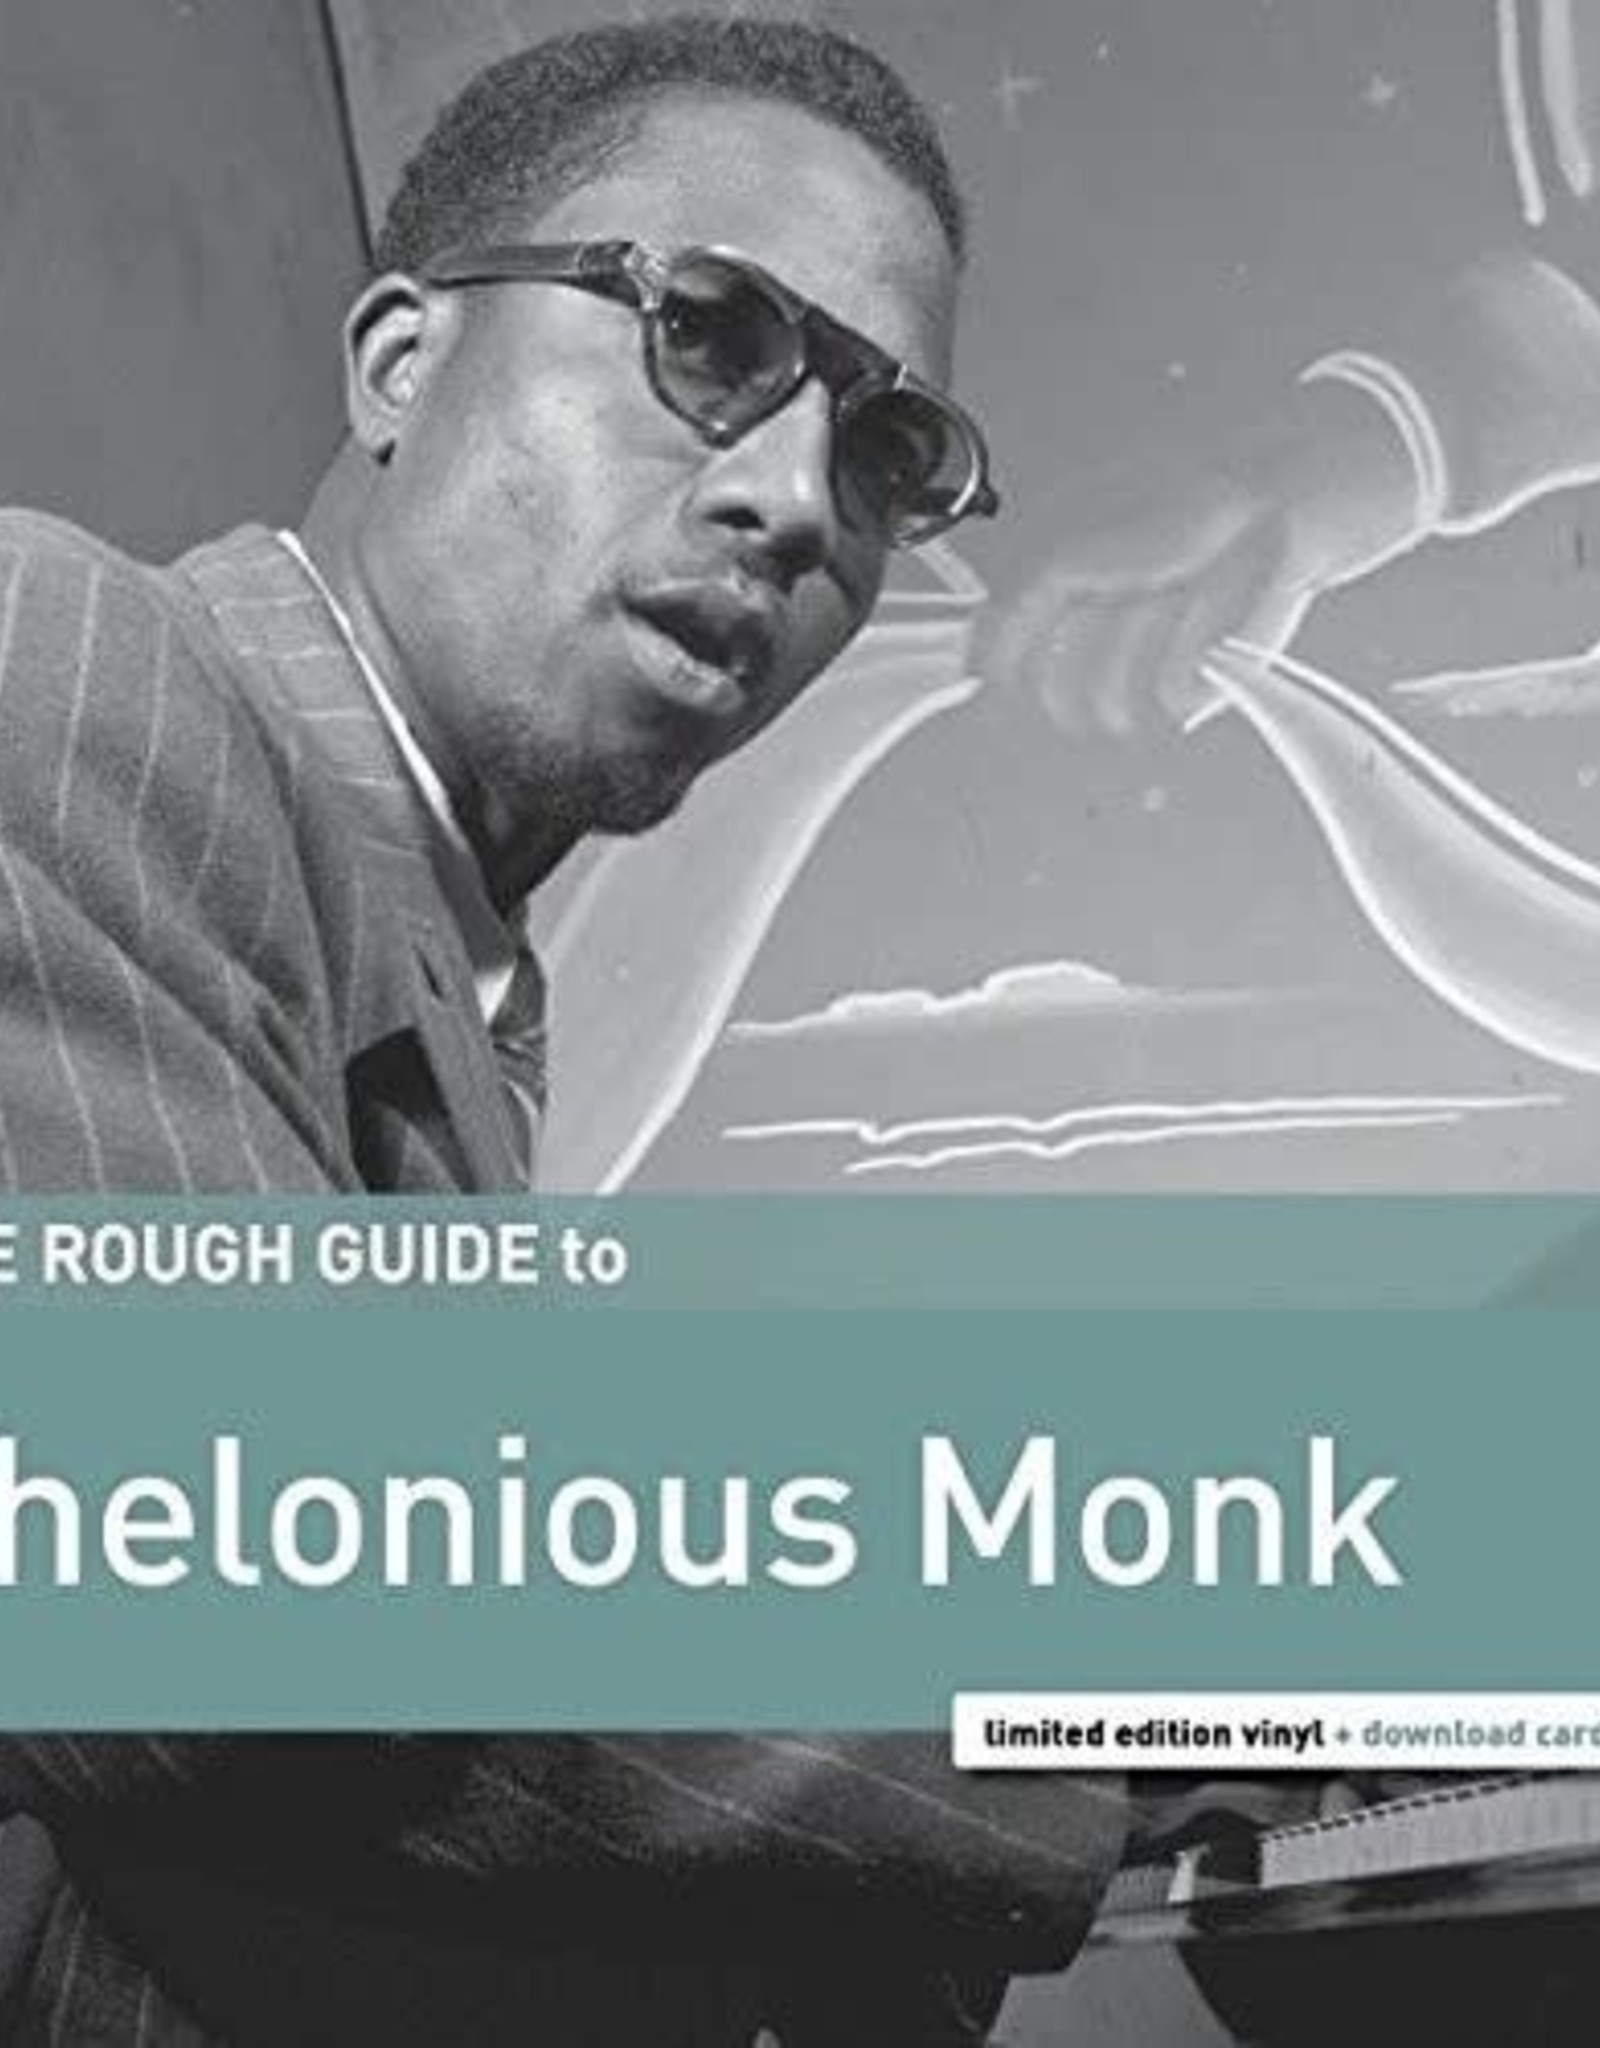 Rough Guide To Thelonious Monk